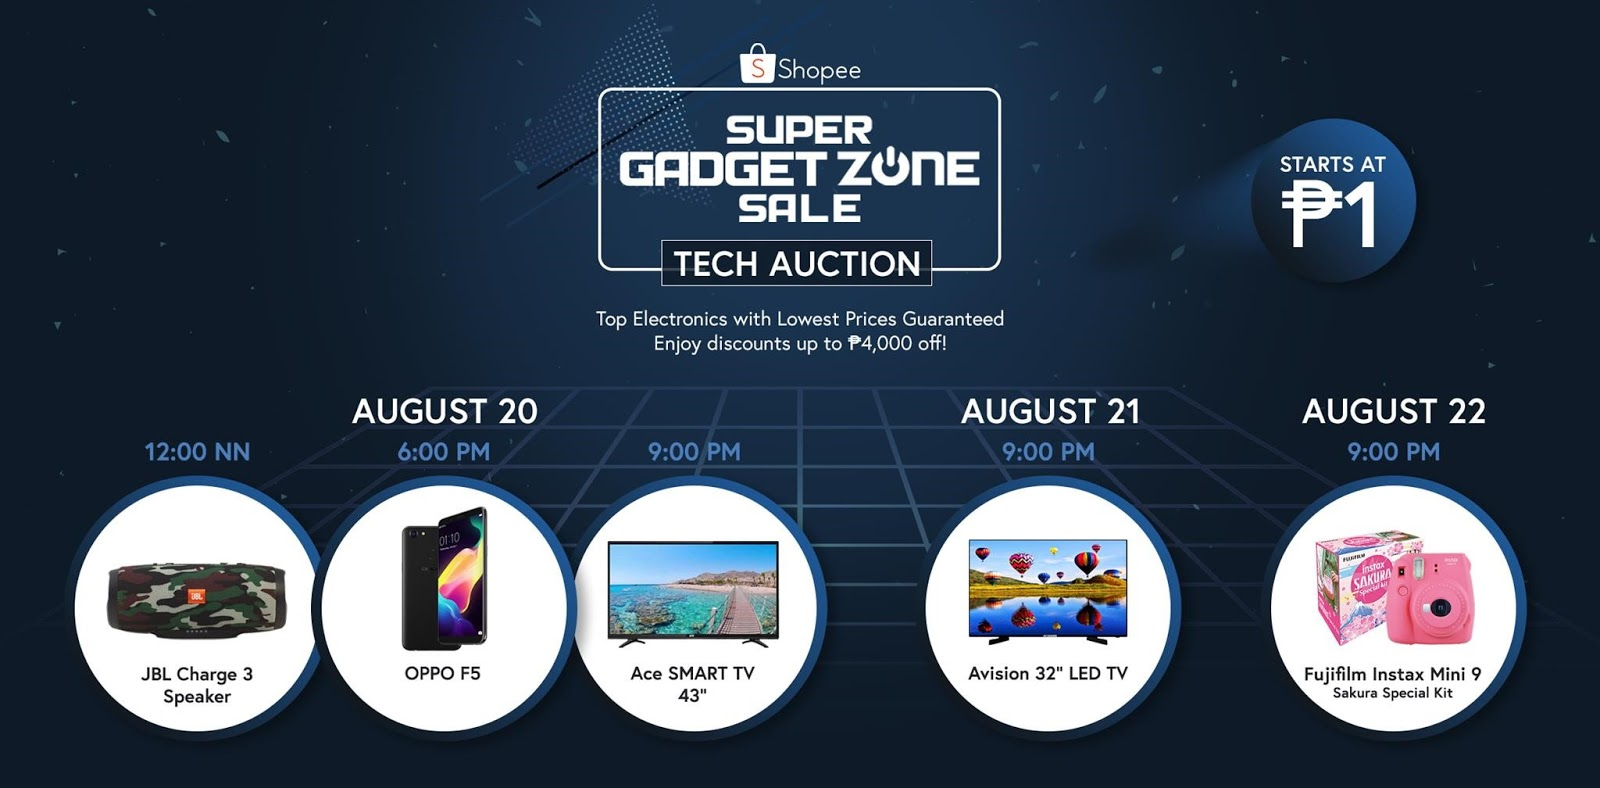 Shopee's Super Gadget Zone Sale Now Ongoing Until August 22